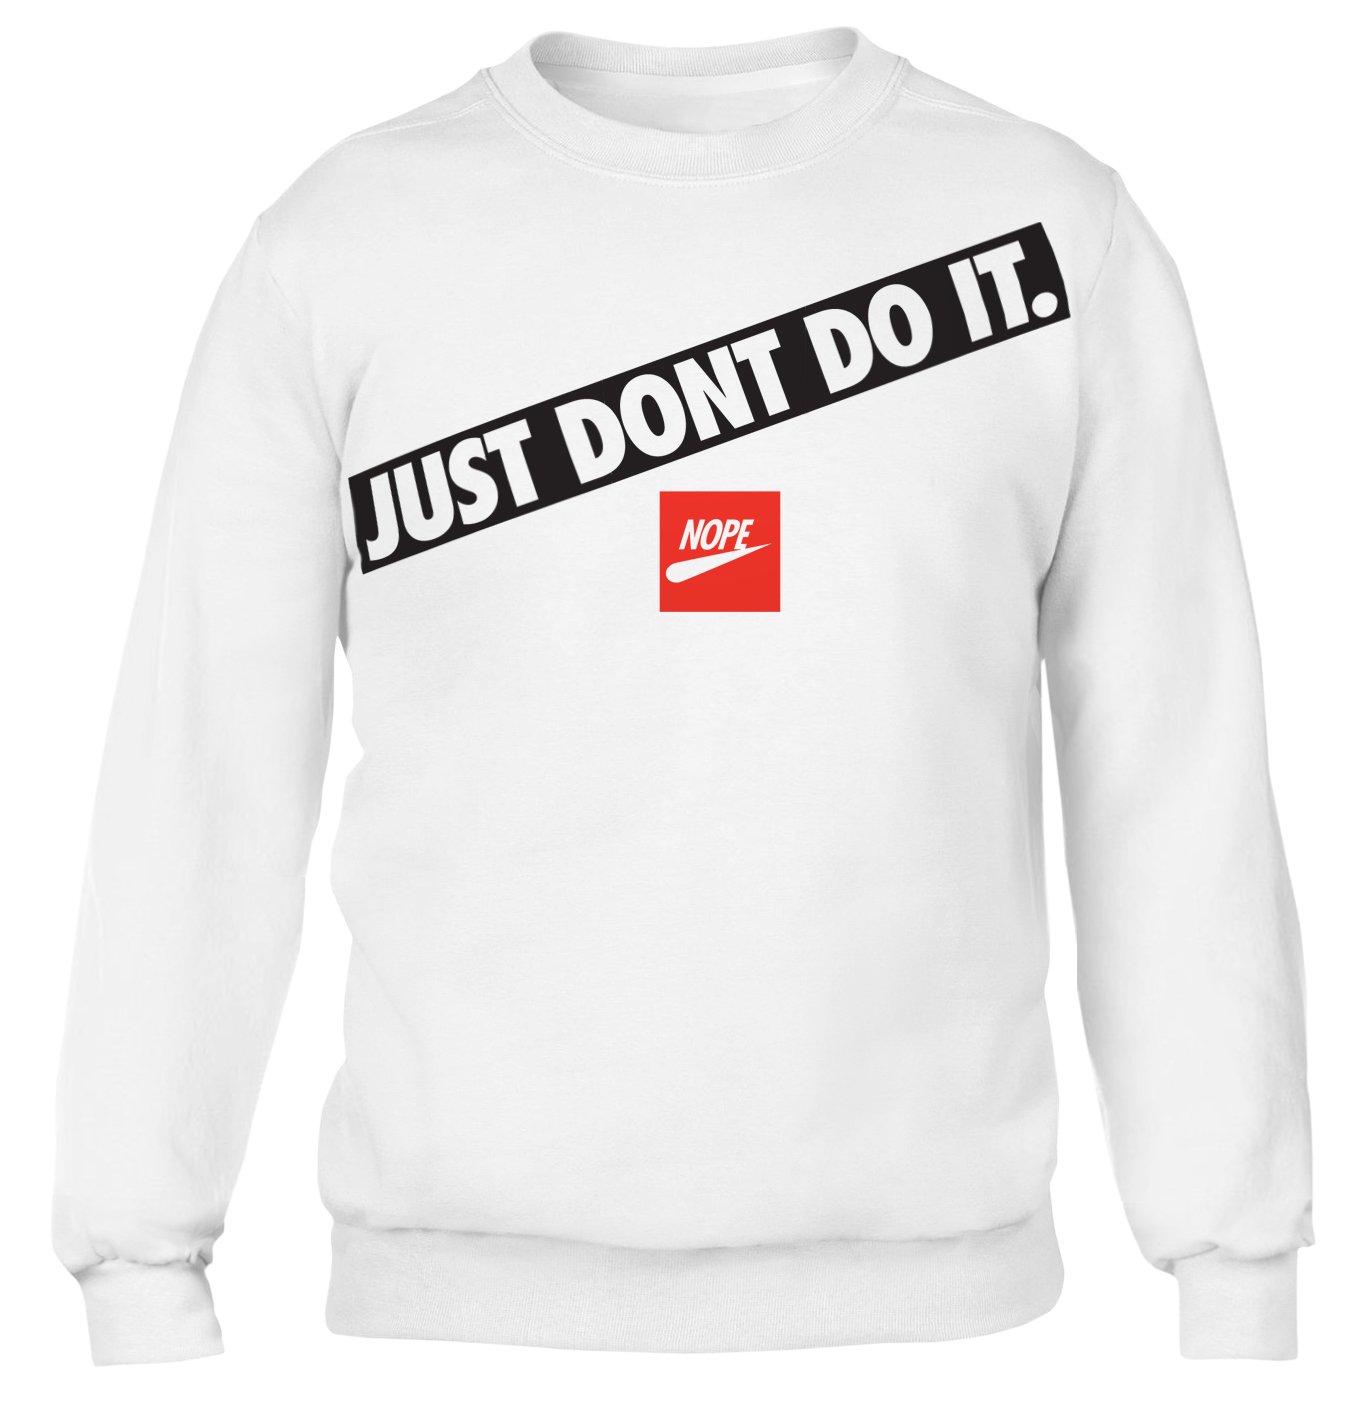 Just Dont Do It. – White Sweatshirt